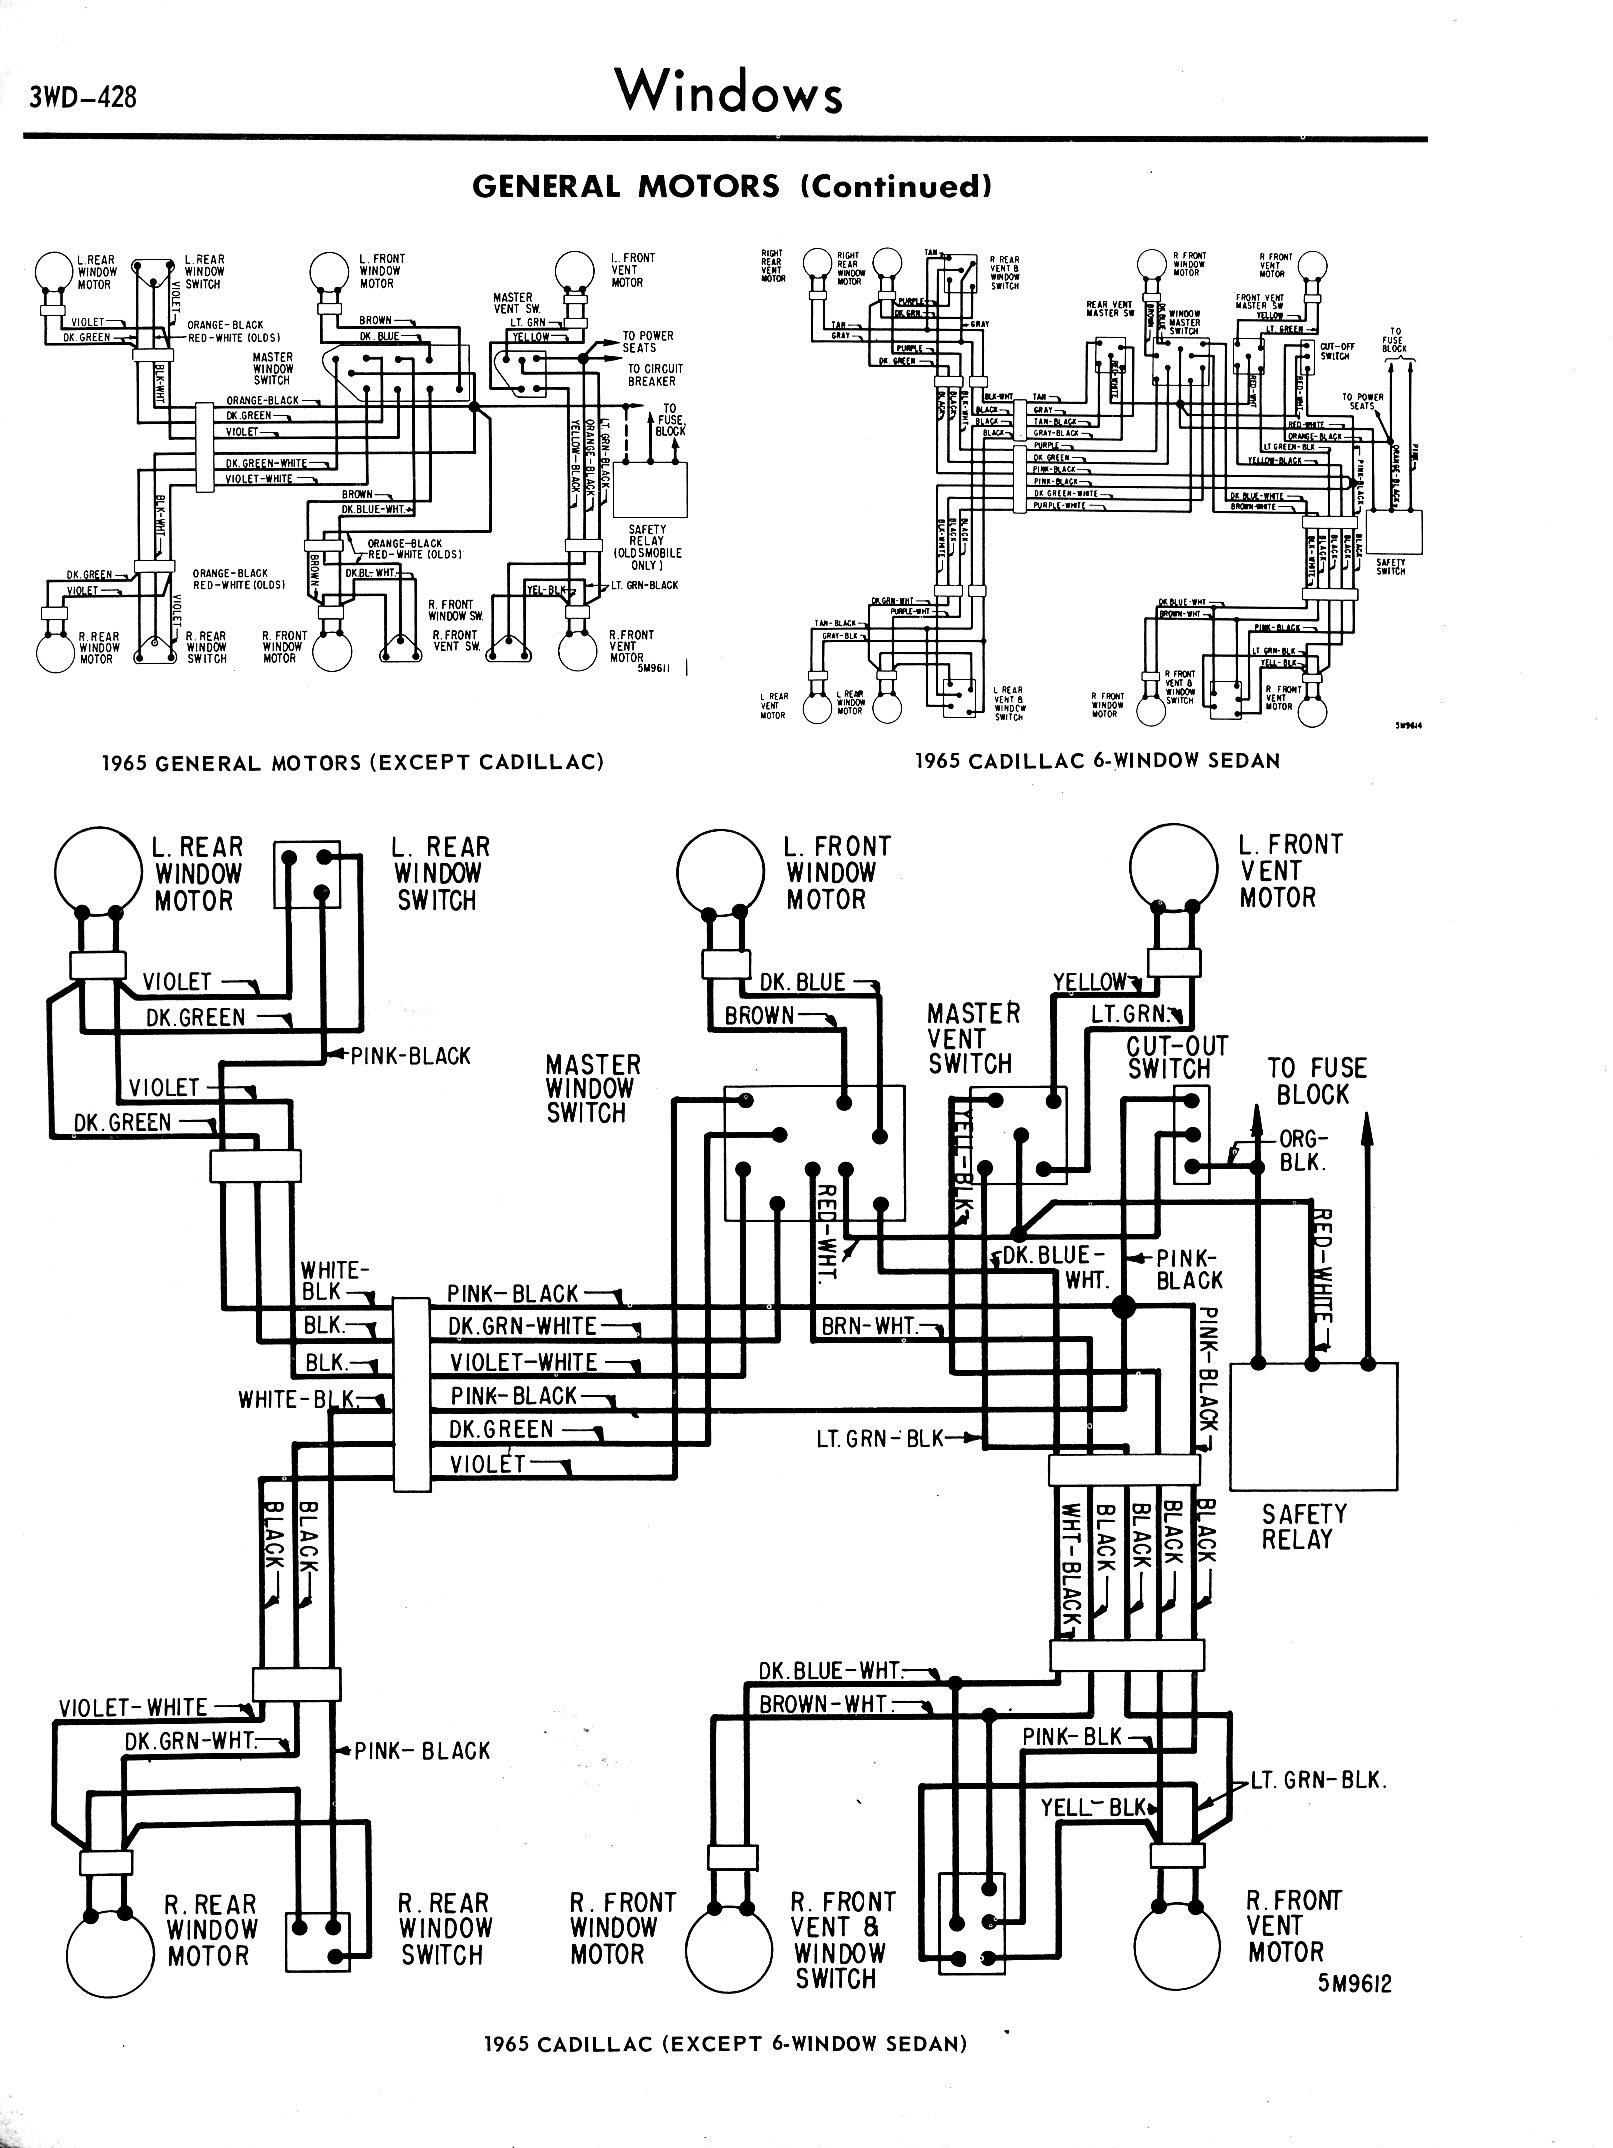 1969 Cadillac Wiring Diagram Excellent Electrical 69 Gmc Pickup Diagrams Power Seat Library Rh 40 Bloxhuette De 1967